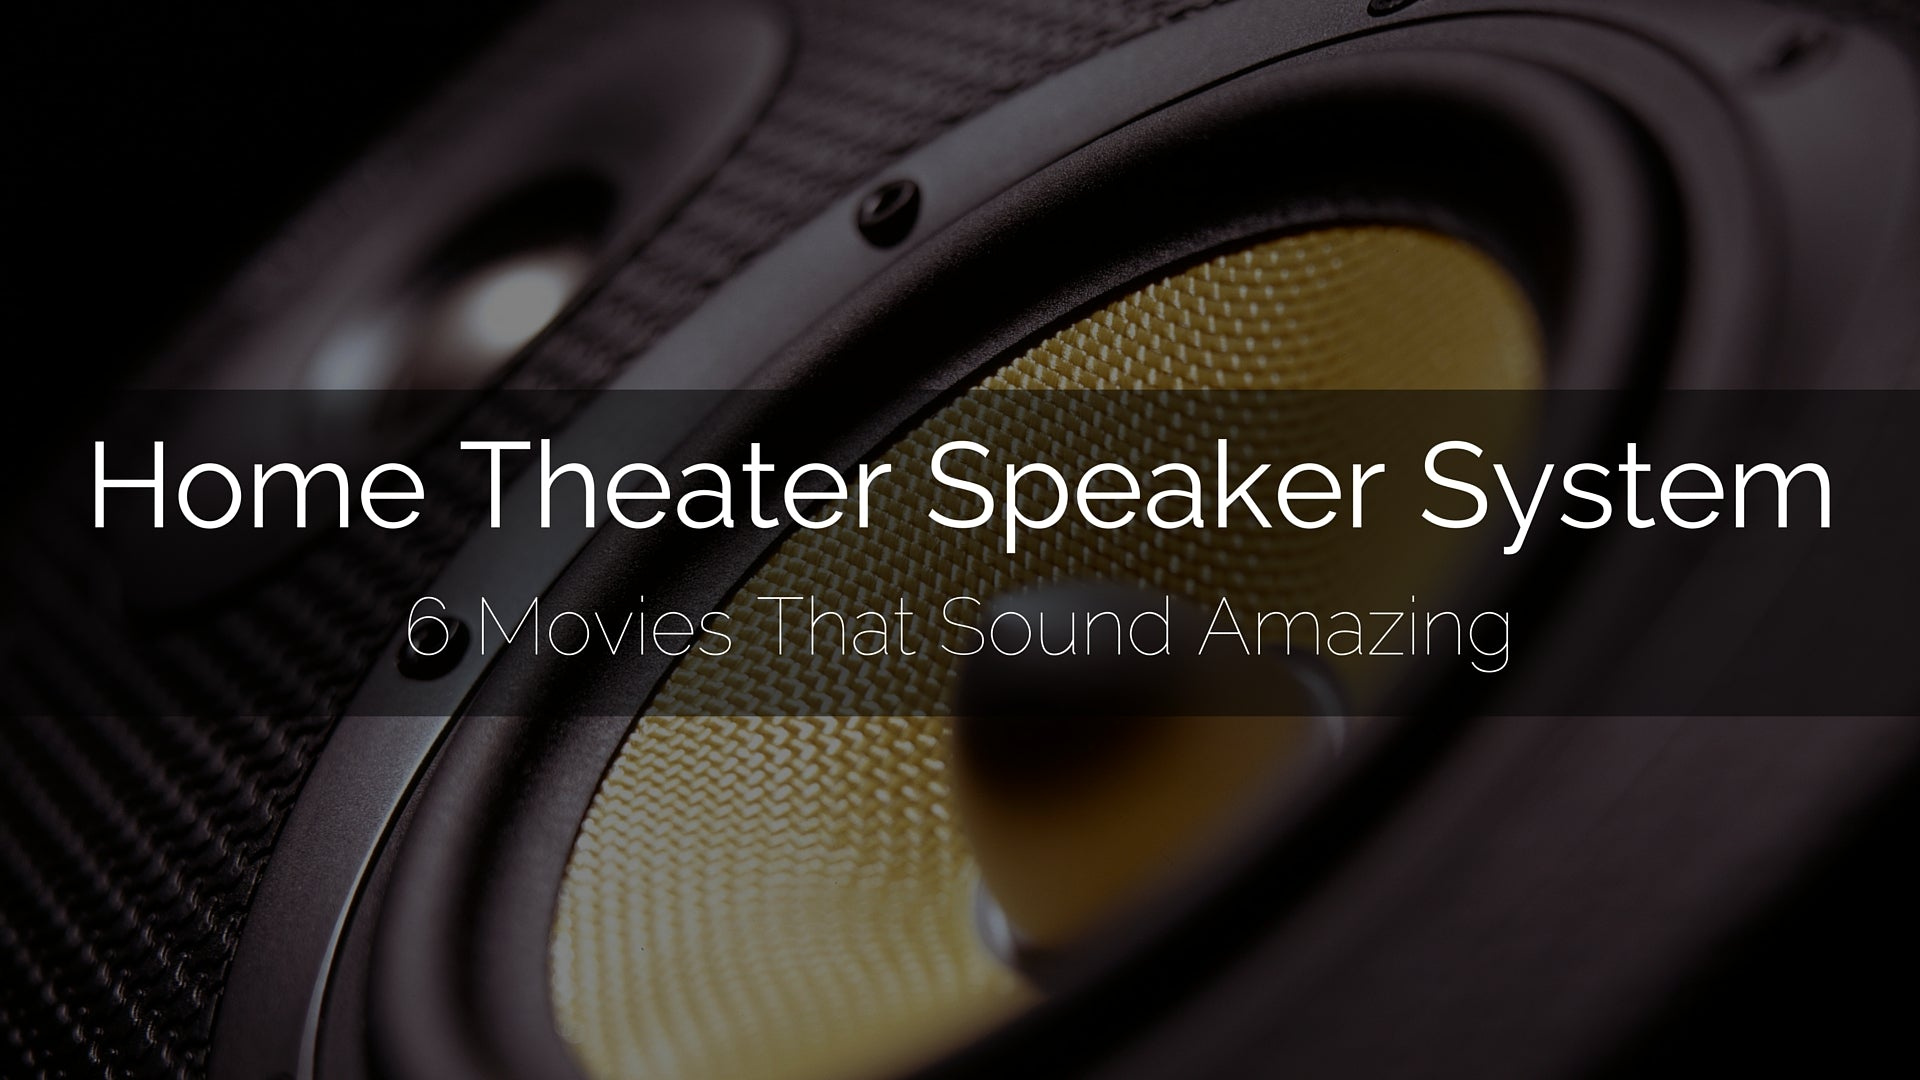 Home Theater Speaker System - Movies That Sound Amazing